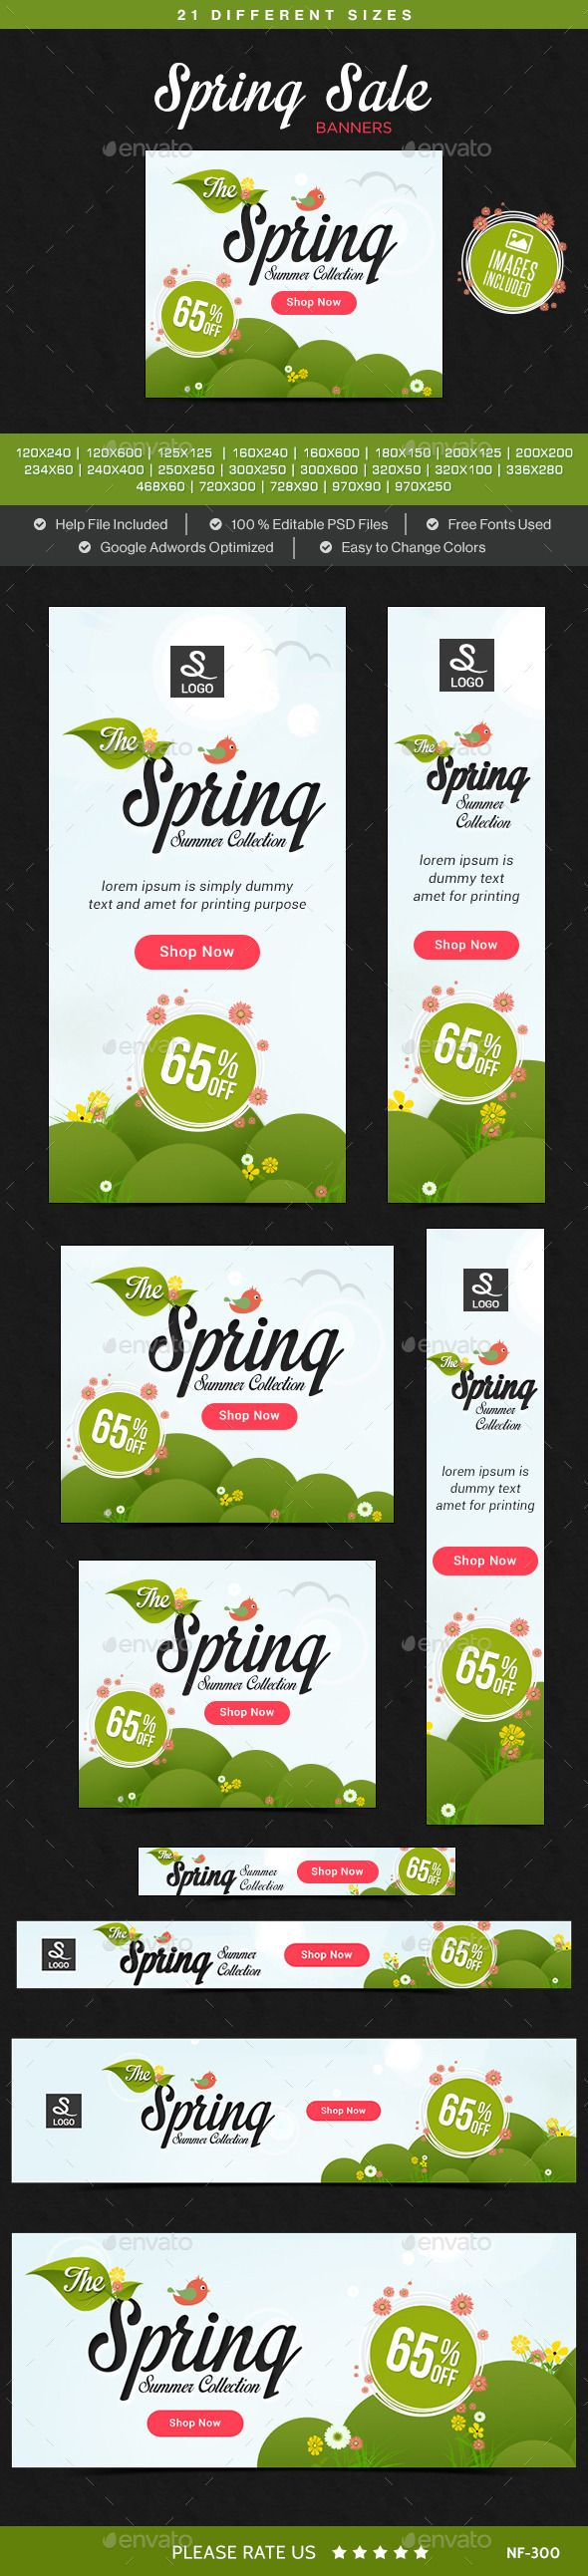 Spring Sale Web Banners Template